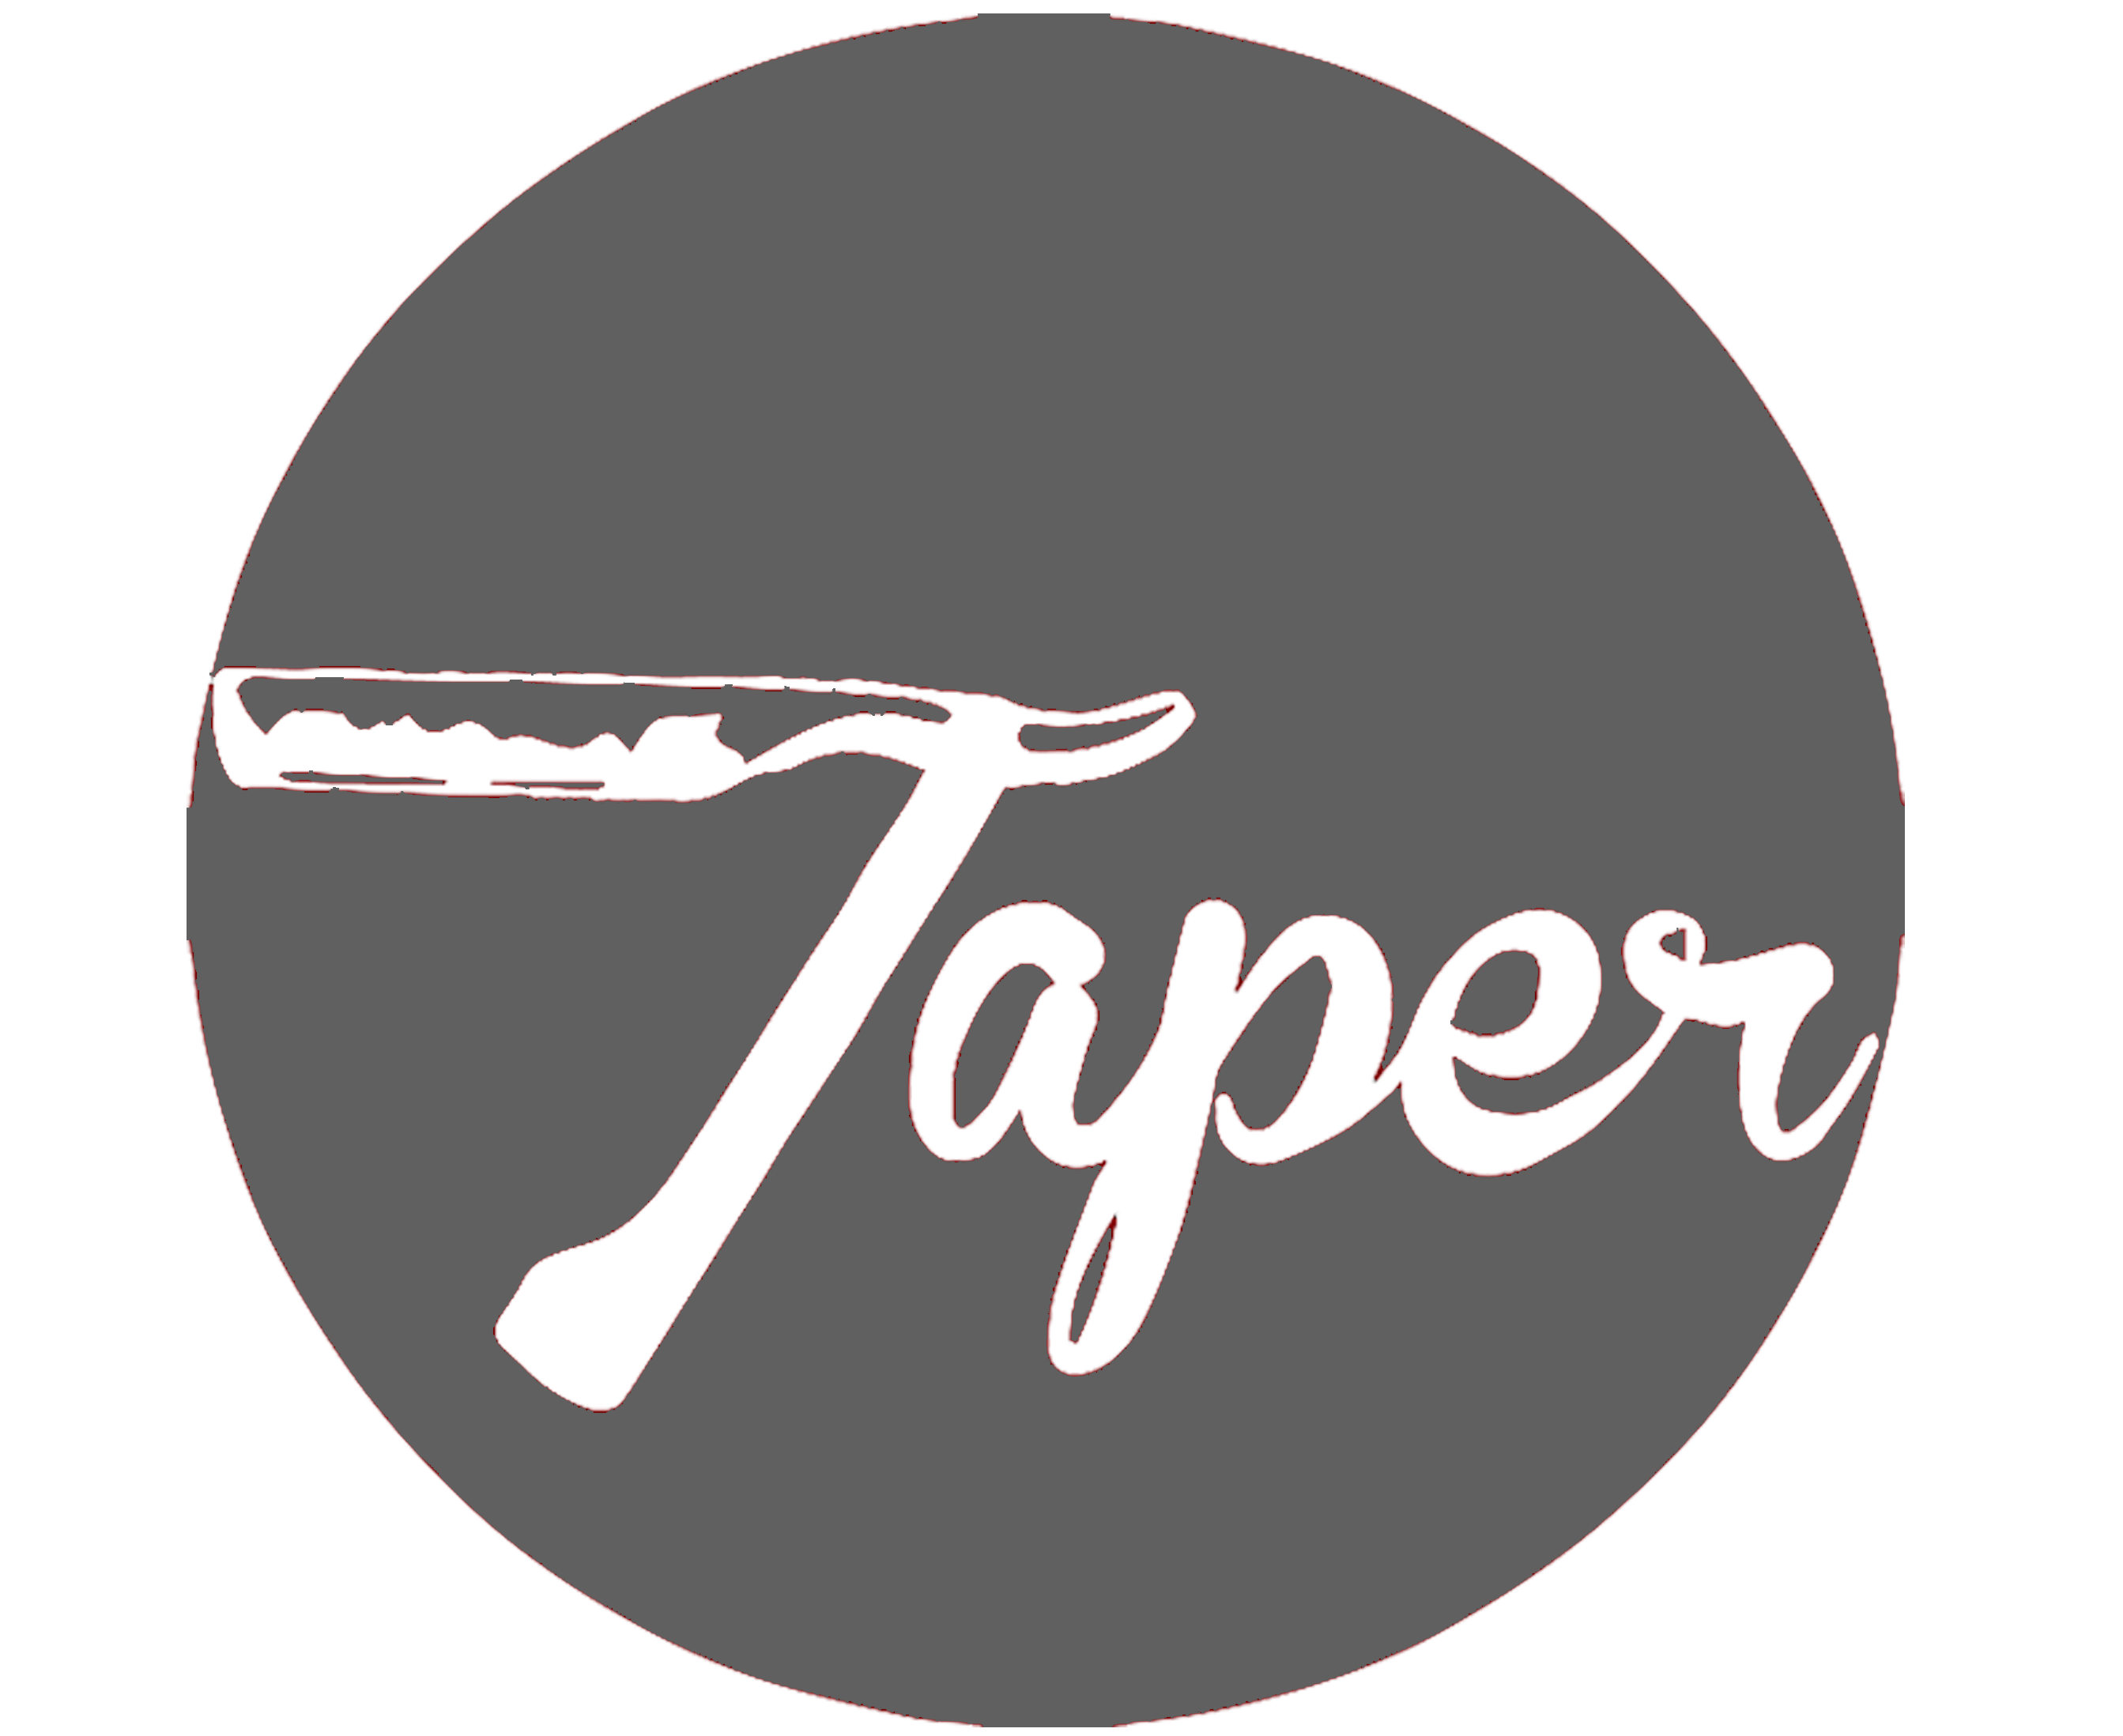 Taper, Inc. Help Center home page